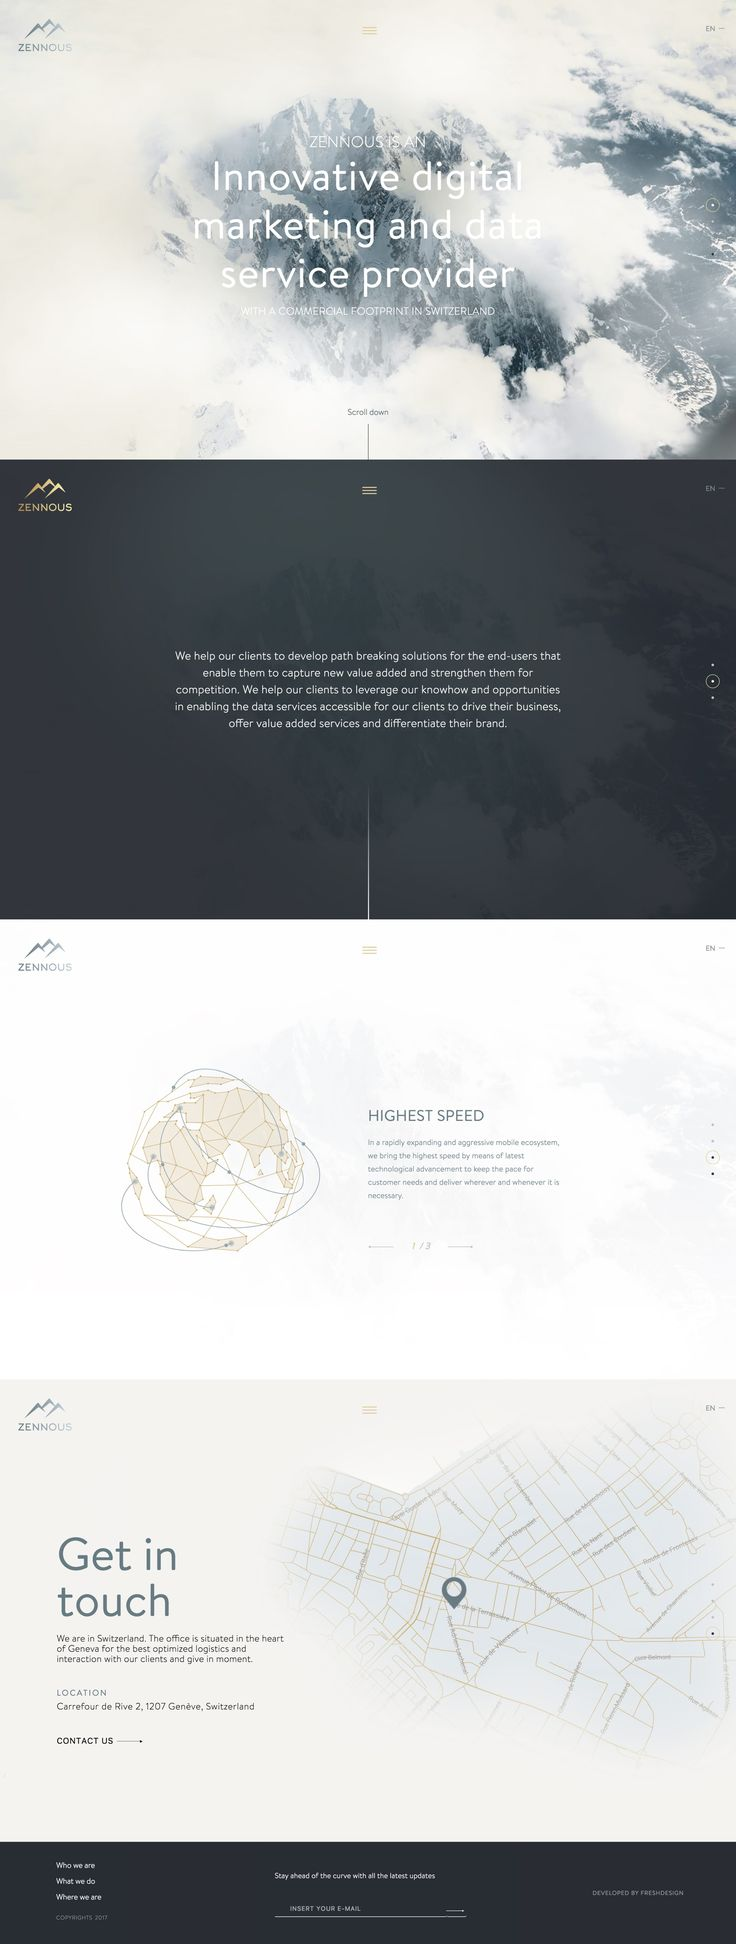 Long scrolling One Pager for Swiss marketing agency, Zennous Innovation. Neat moving cloud effect and nice touch with the full window map view if needed.